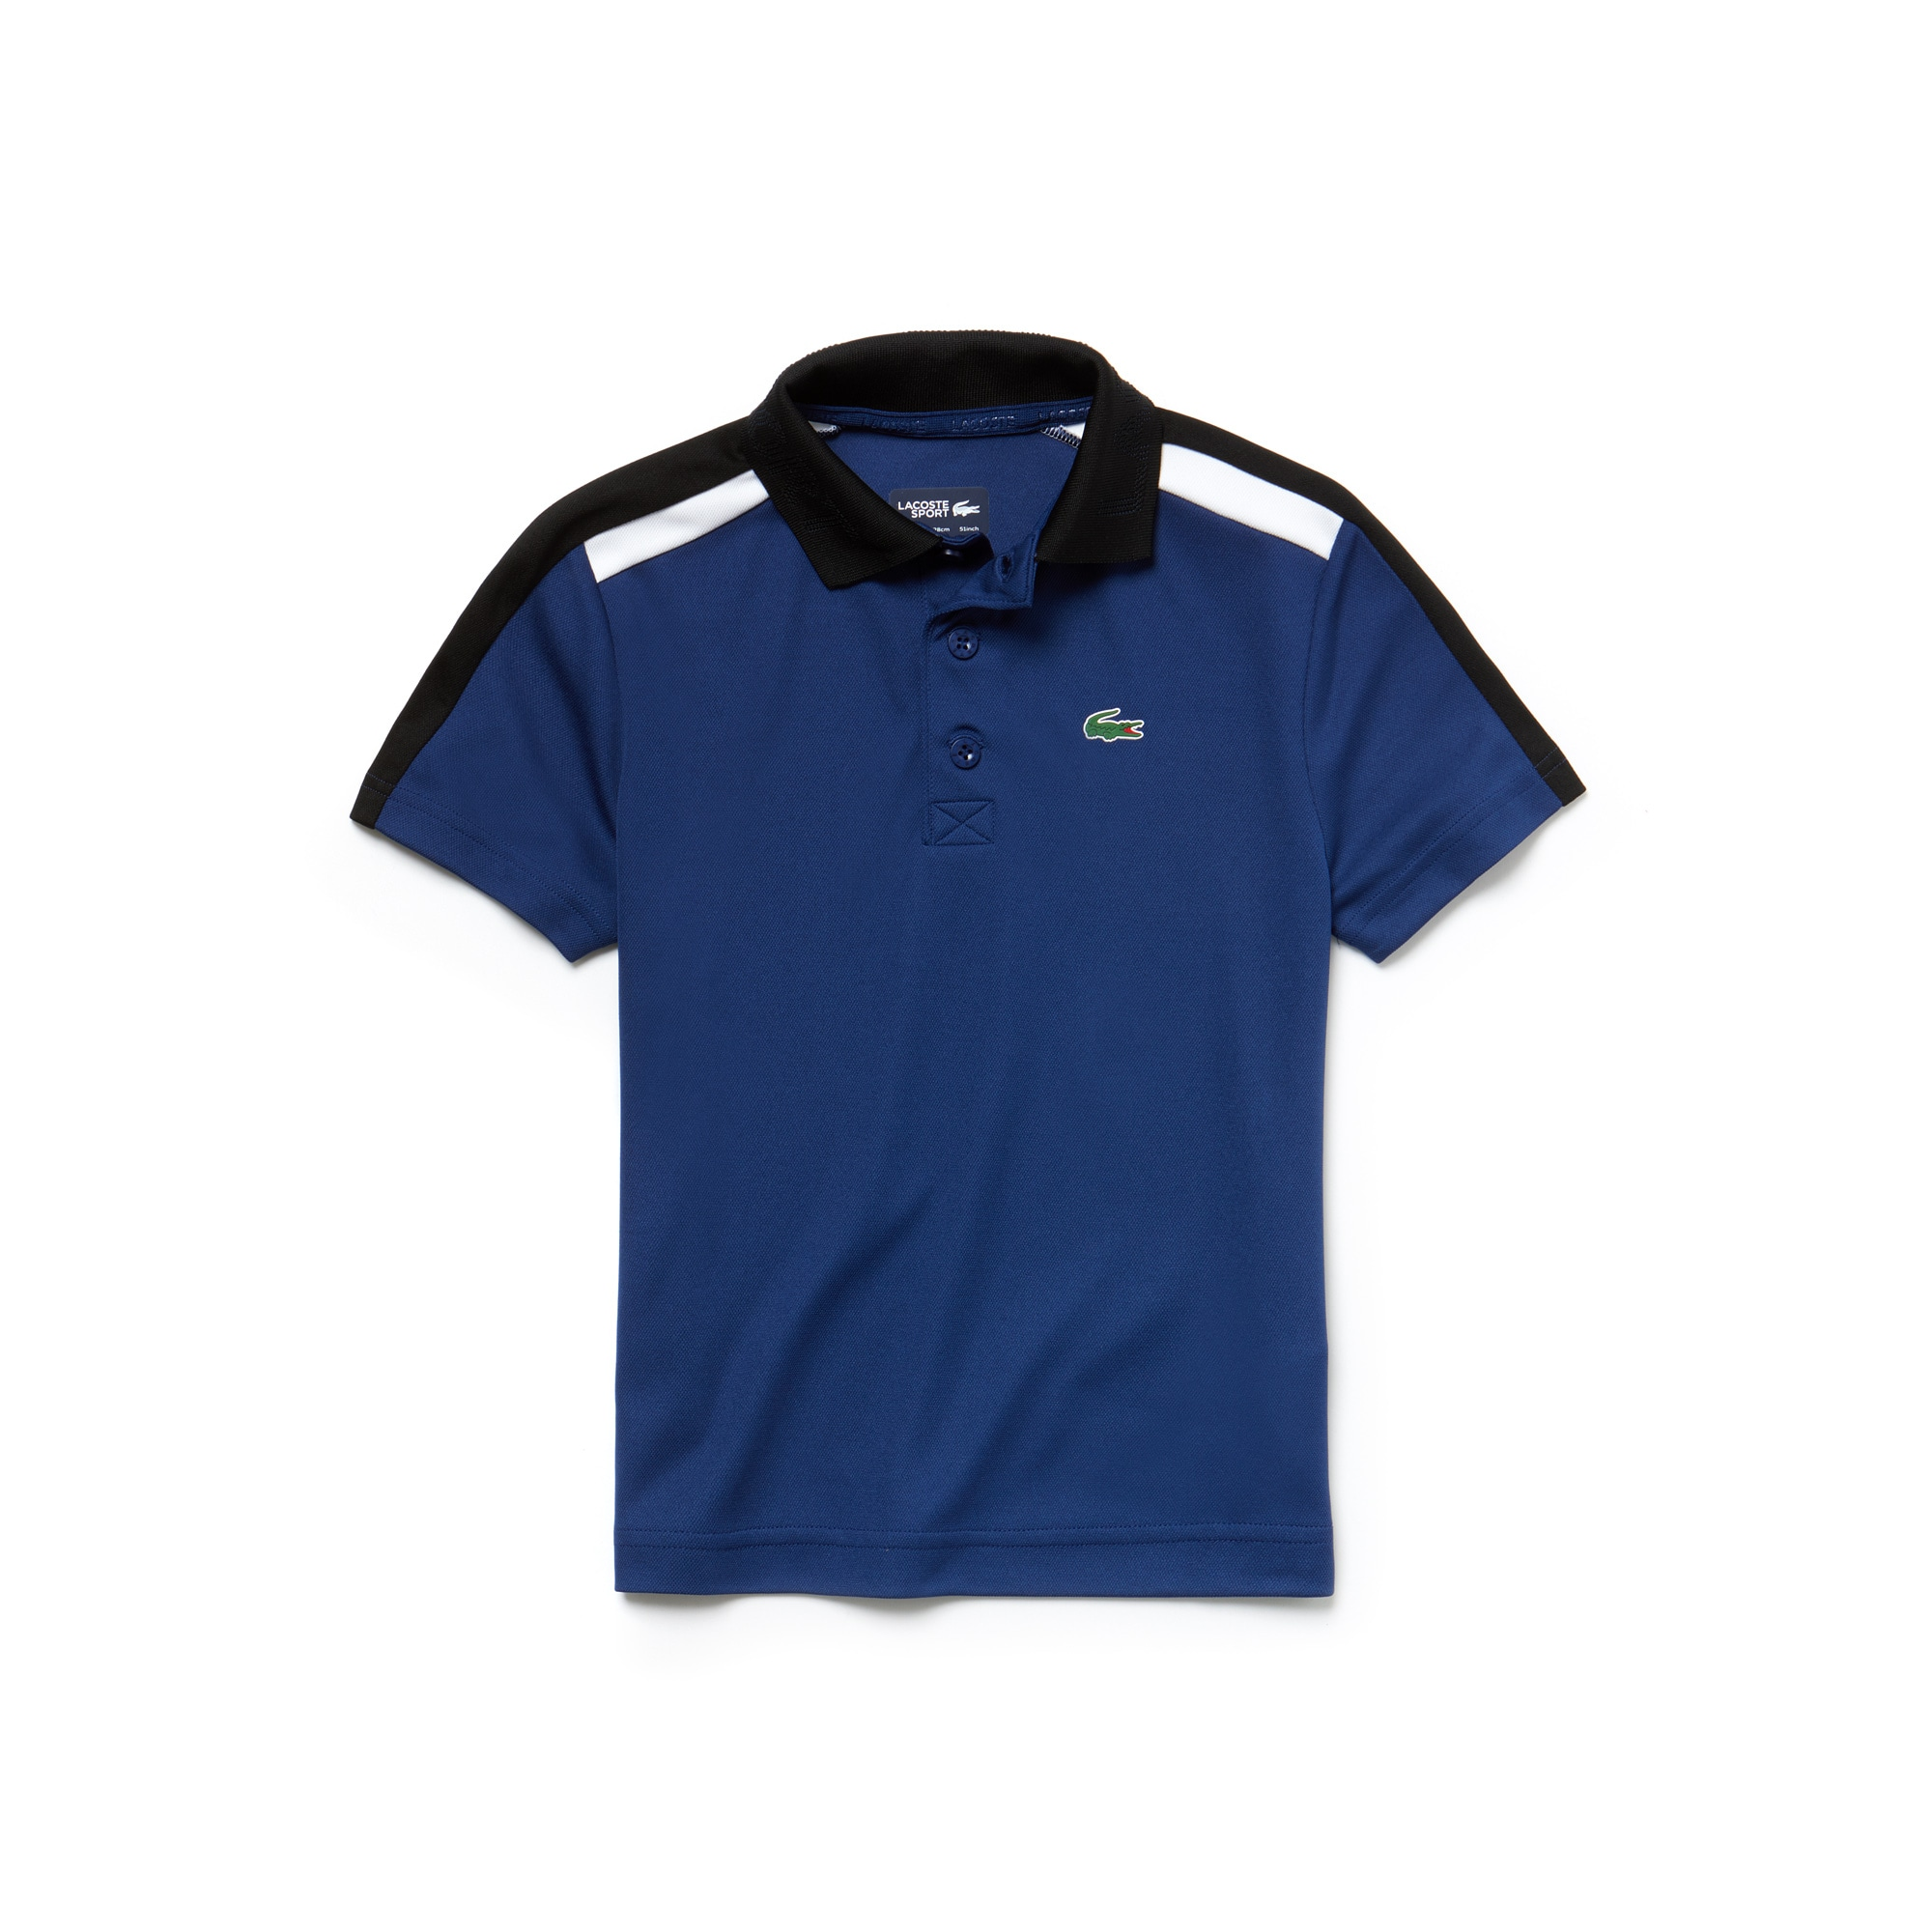 Boys' SPORT Contrast Bands Piqué Tennis Polo